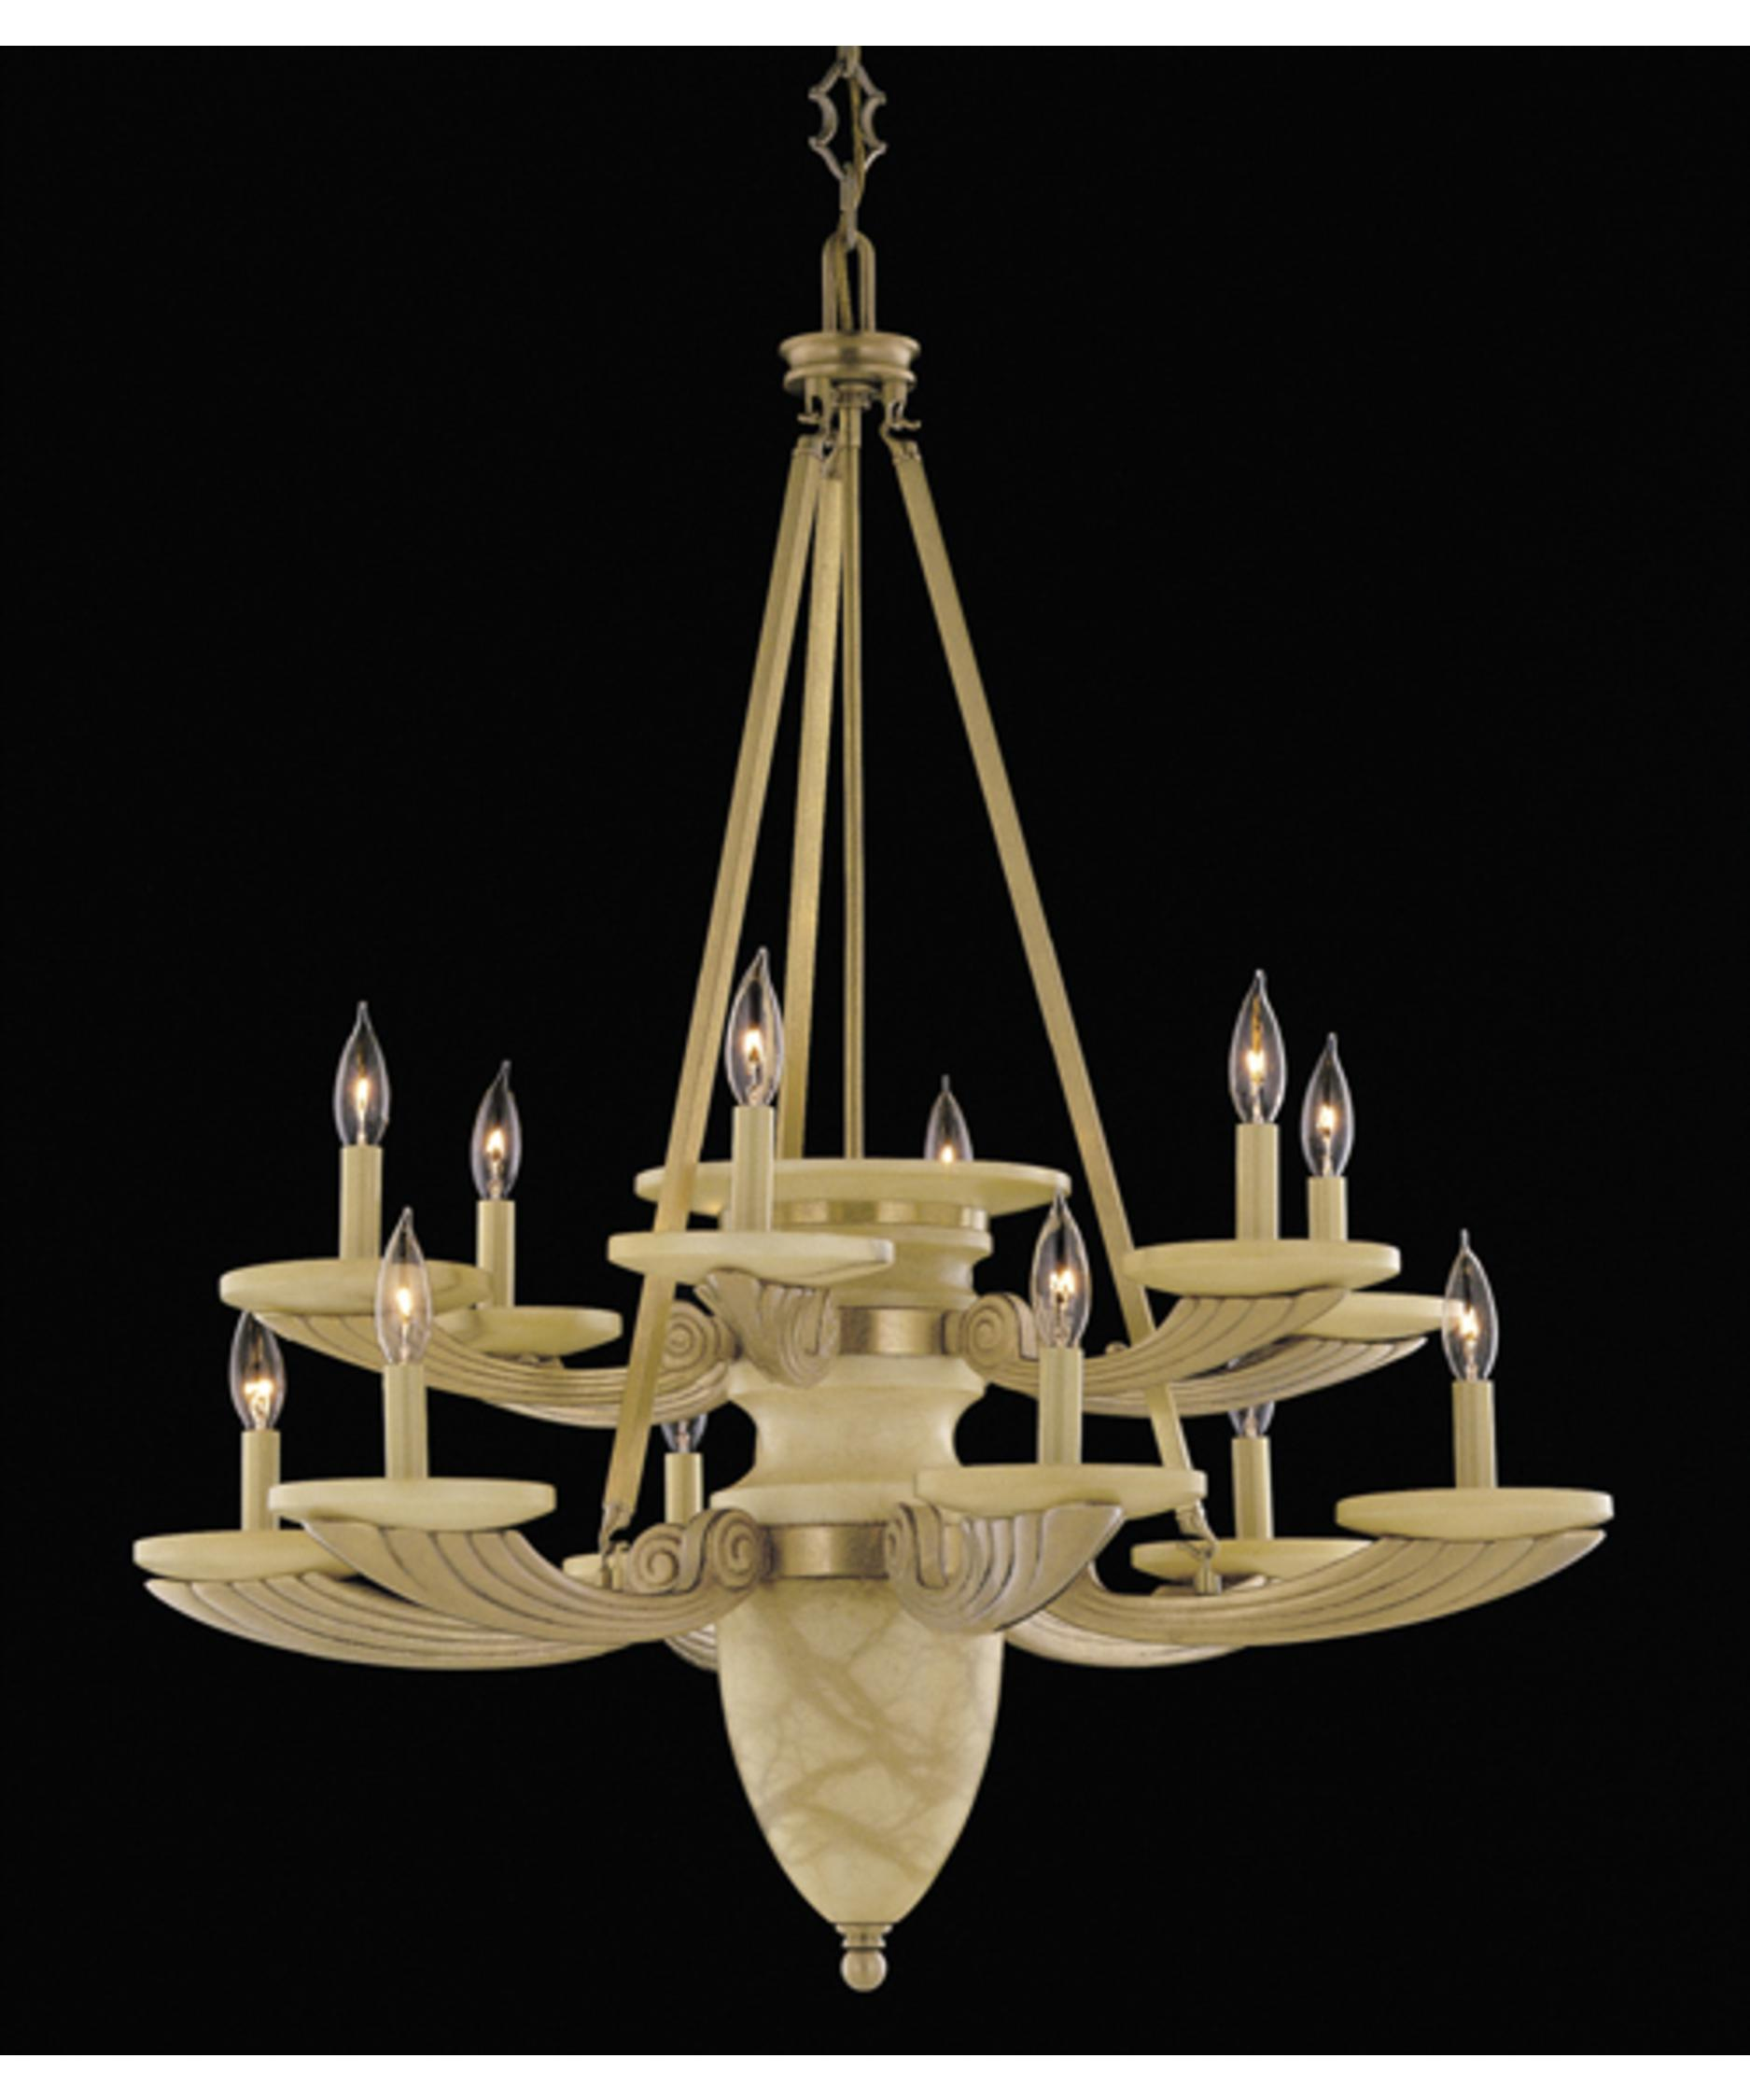 nulco lighting nulco lighting  delft  inch wide  light  - nulco lighting millenia inch wide light chandelier